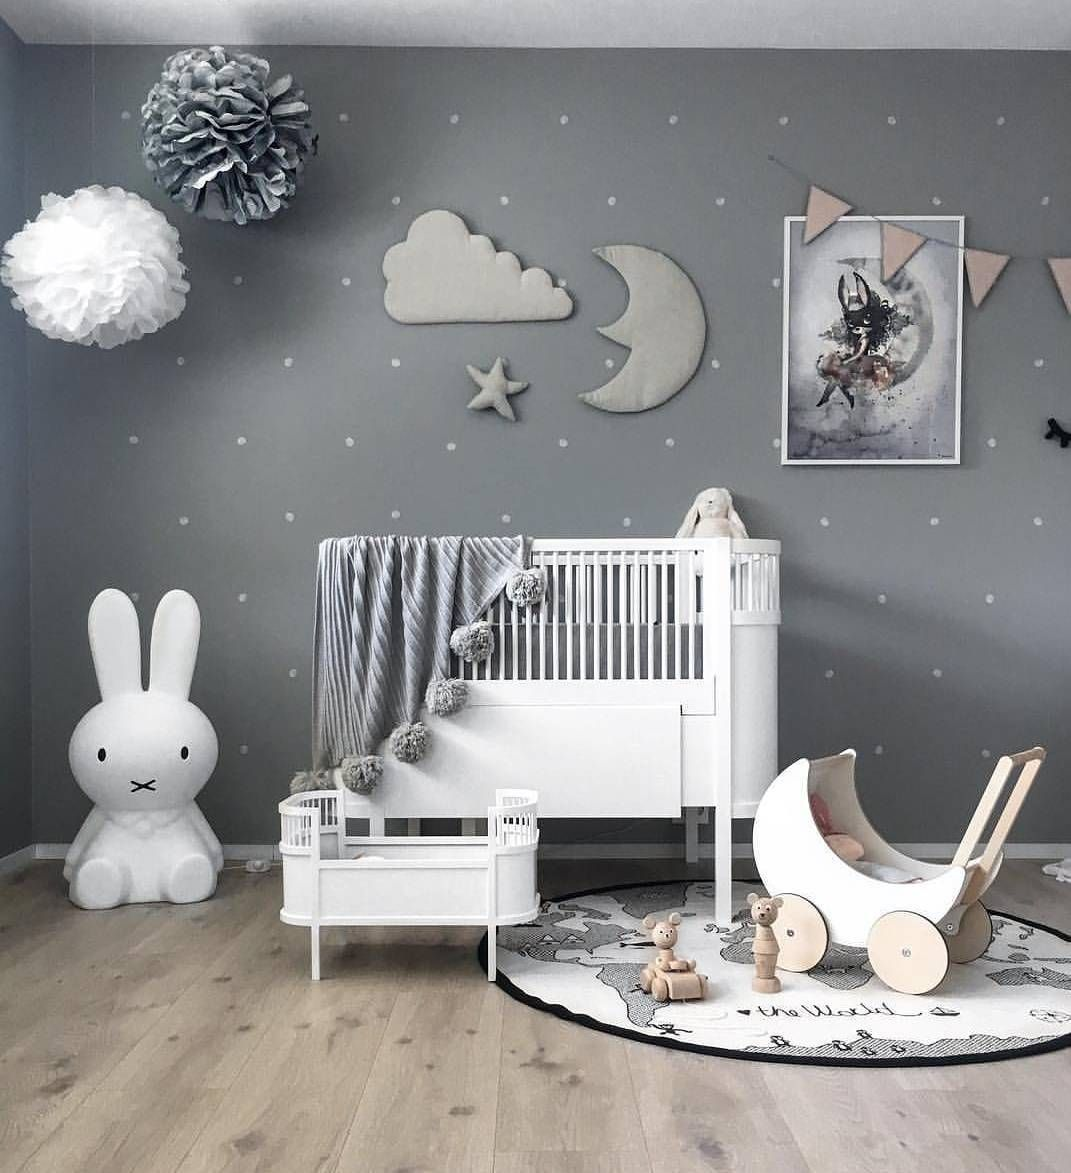 18 Cute Baby Room Ideas images